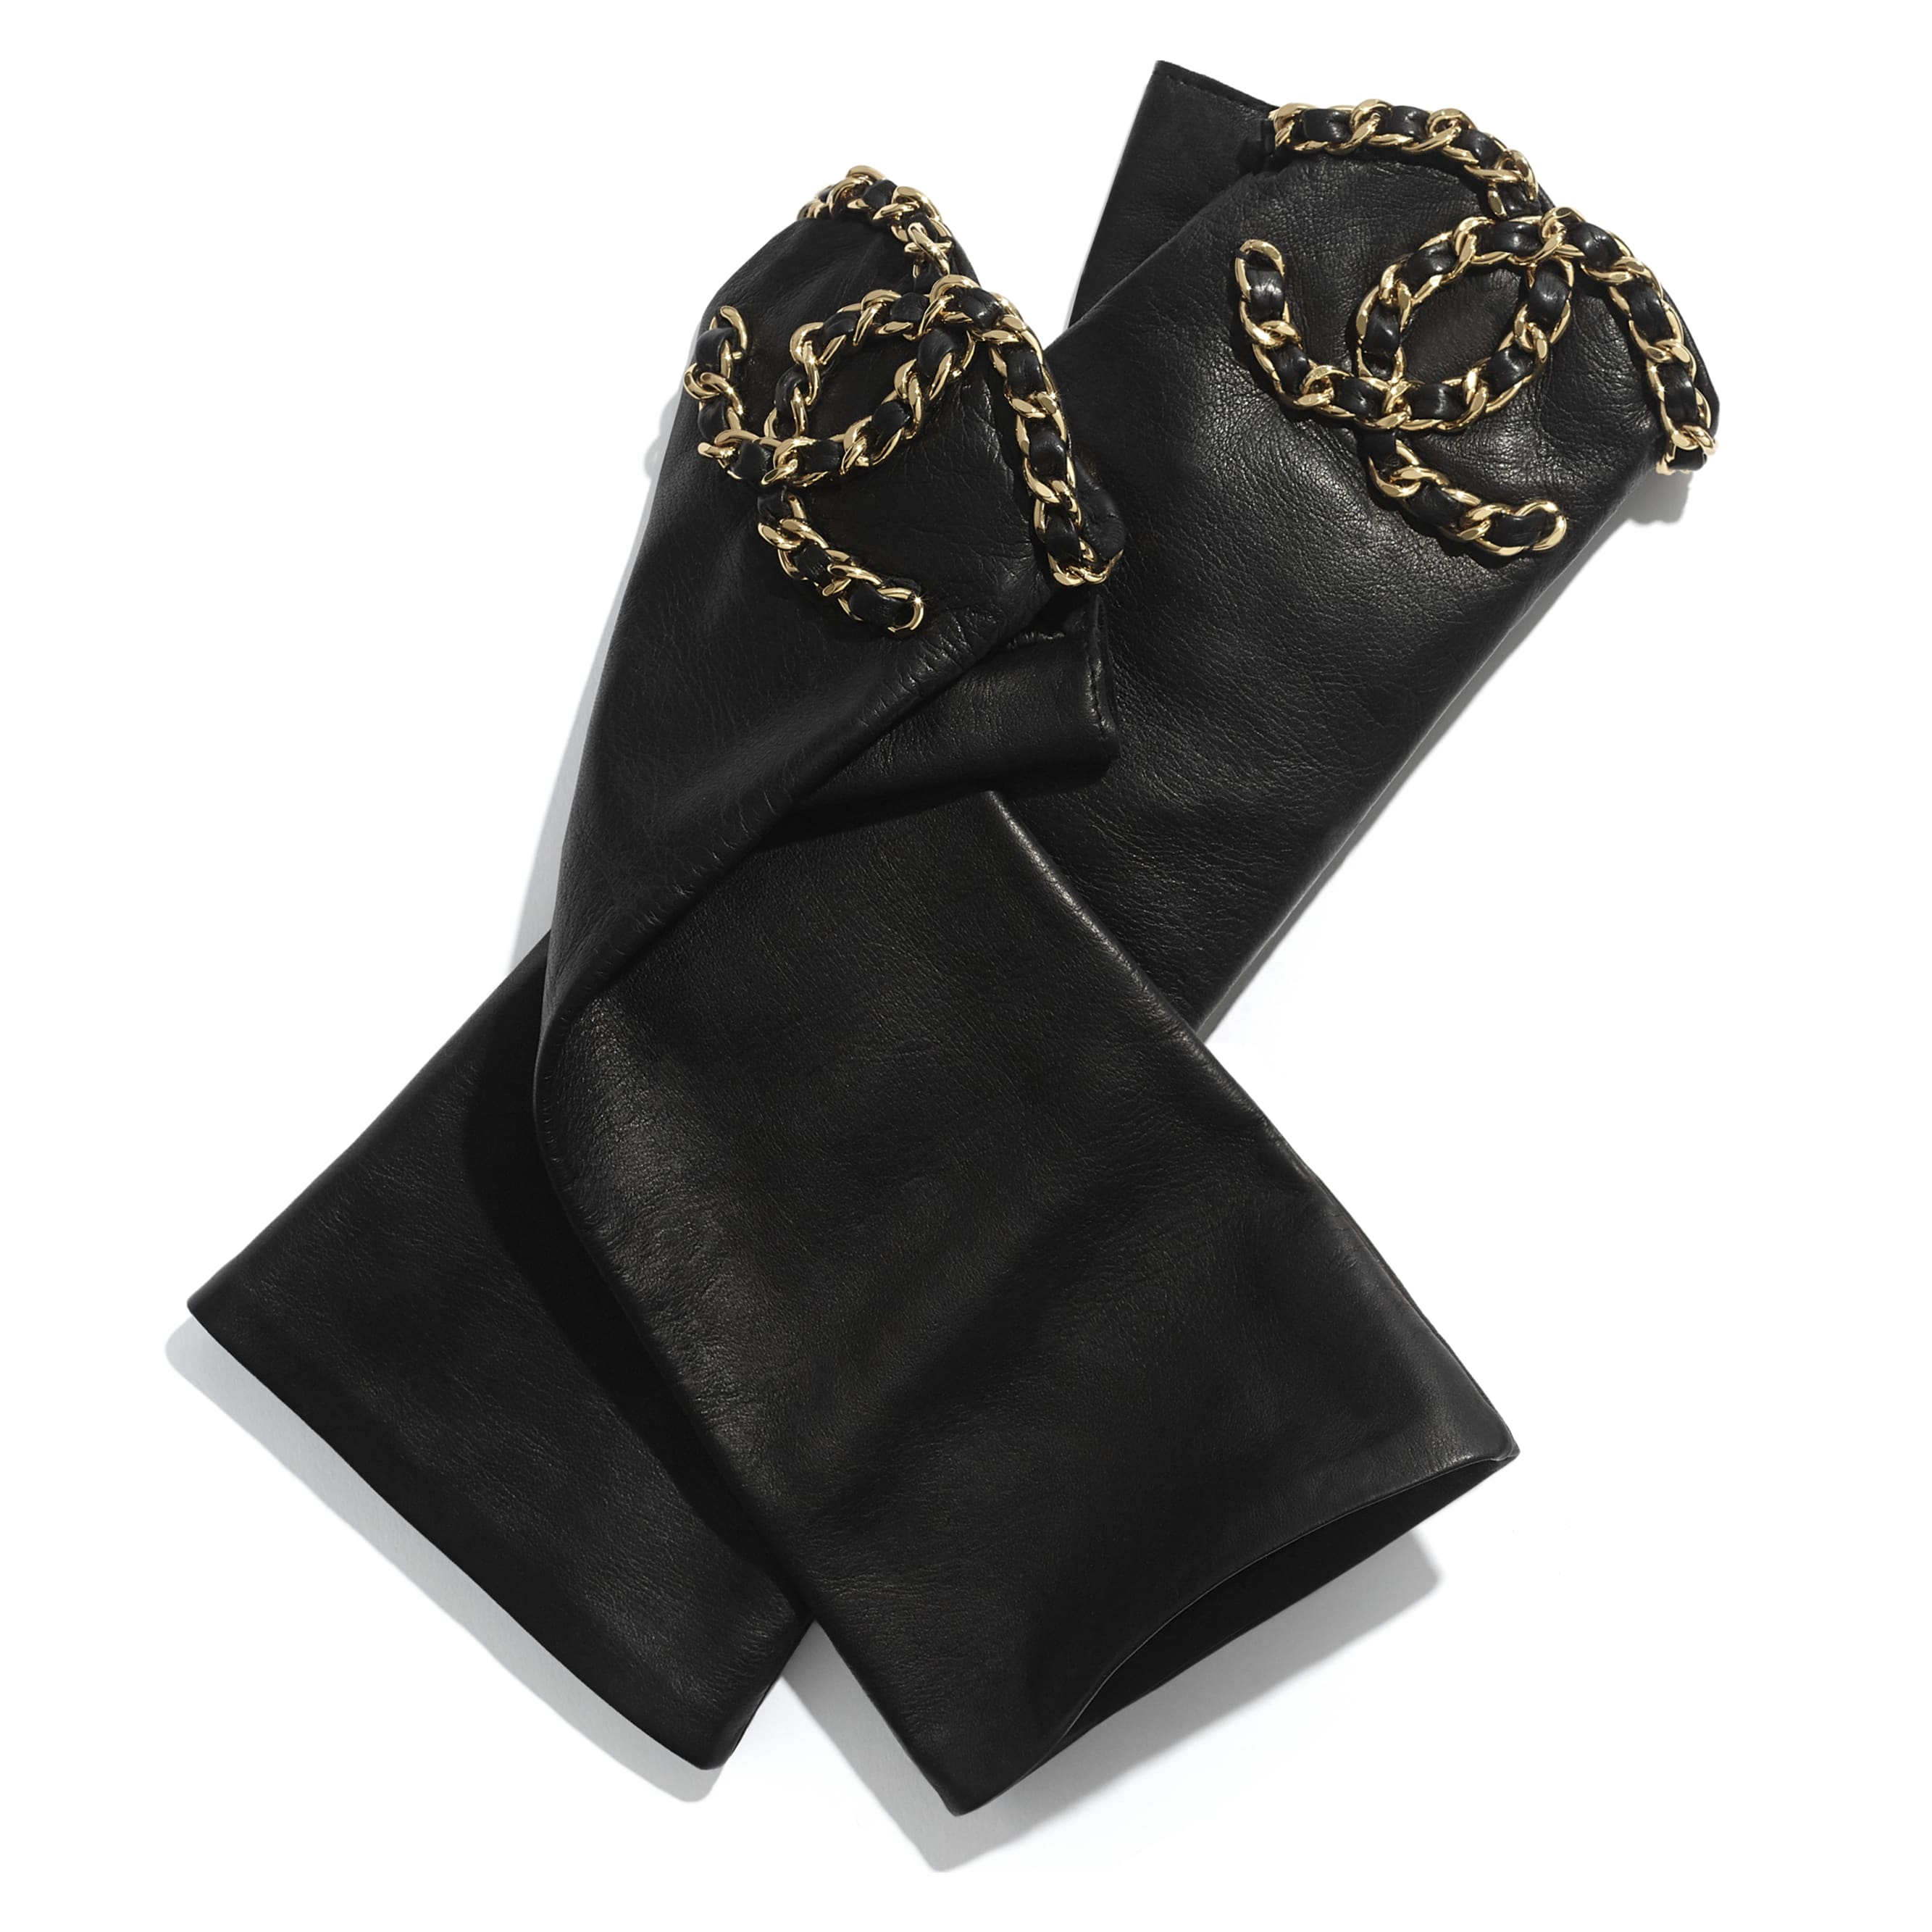 Gloves - Black - Lambskin & Gold-Tone Metal - CHANEL - Default view - see standard sized version